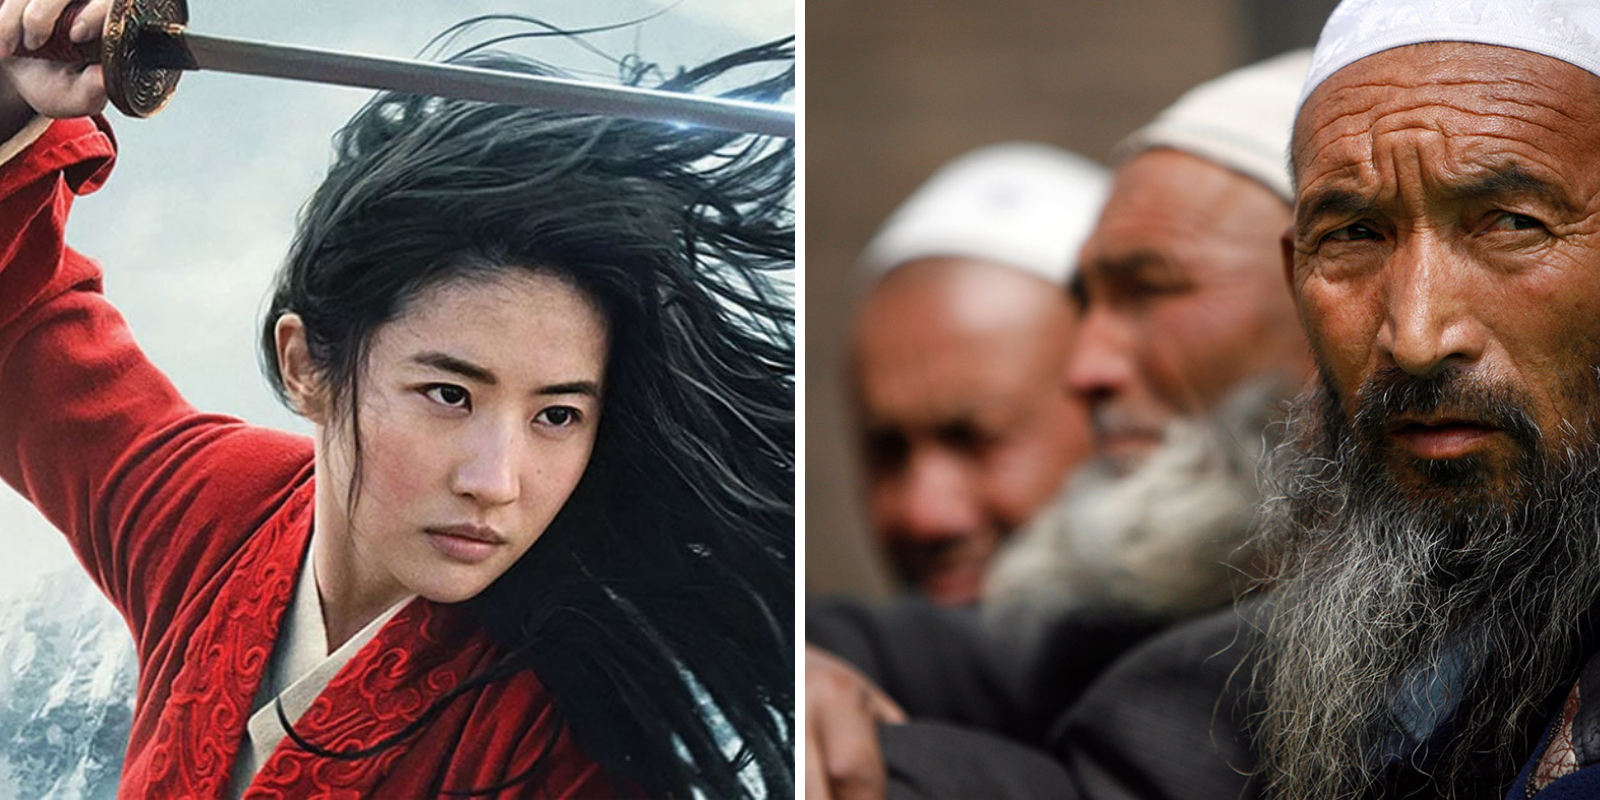 Disney thanks China for letting them film Mulan near site of Muslim concentration camps